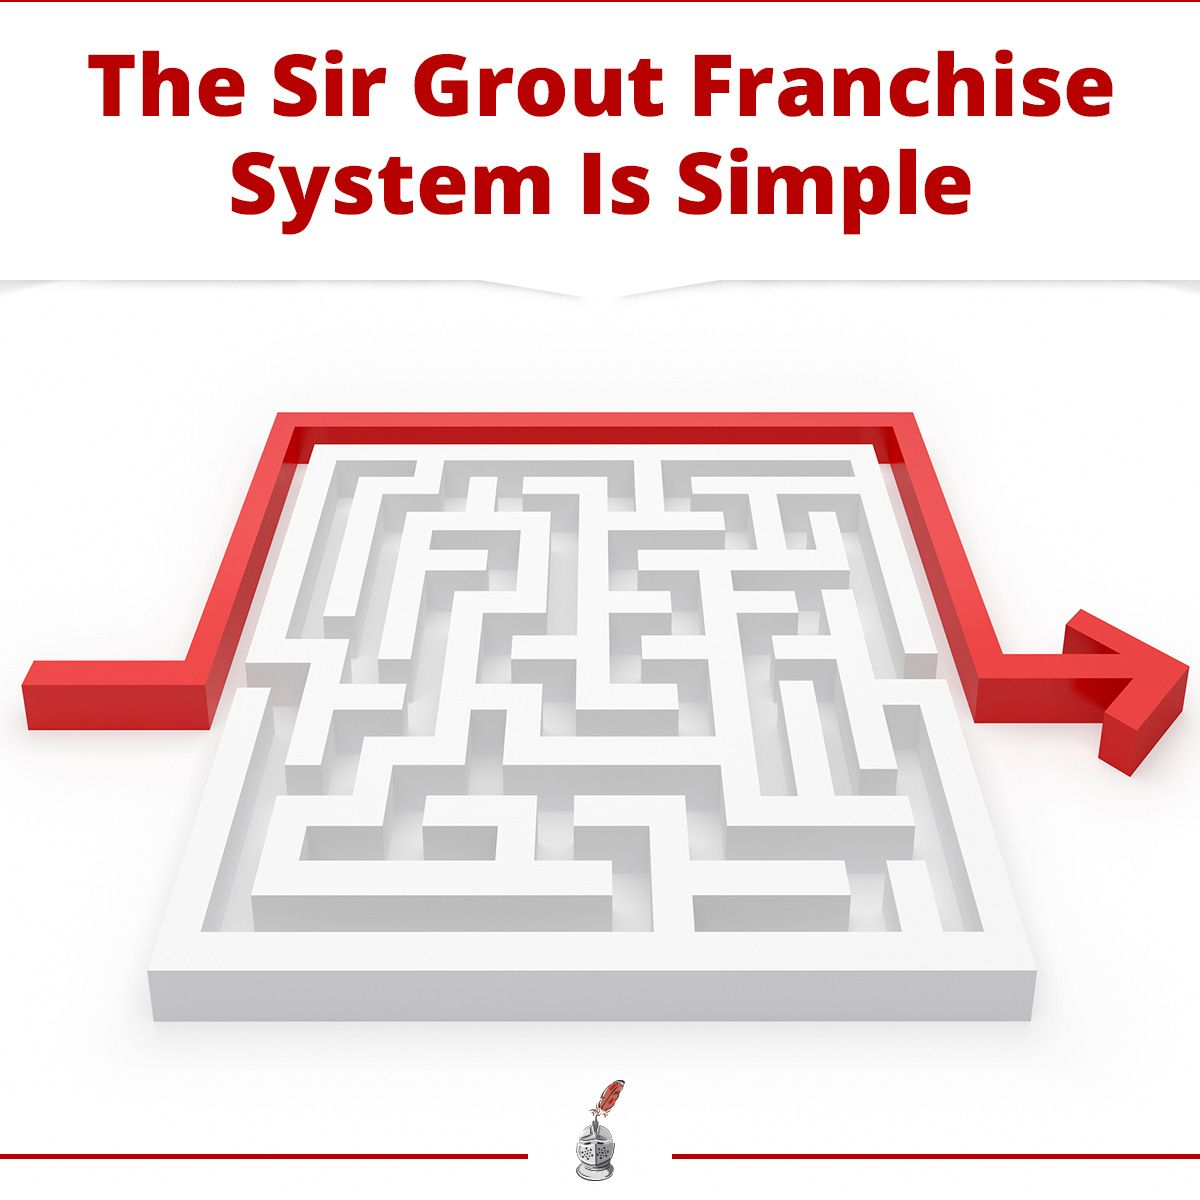 The Sir Grout Franchise System Is Simple